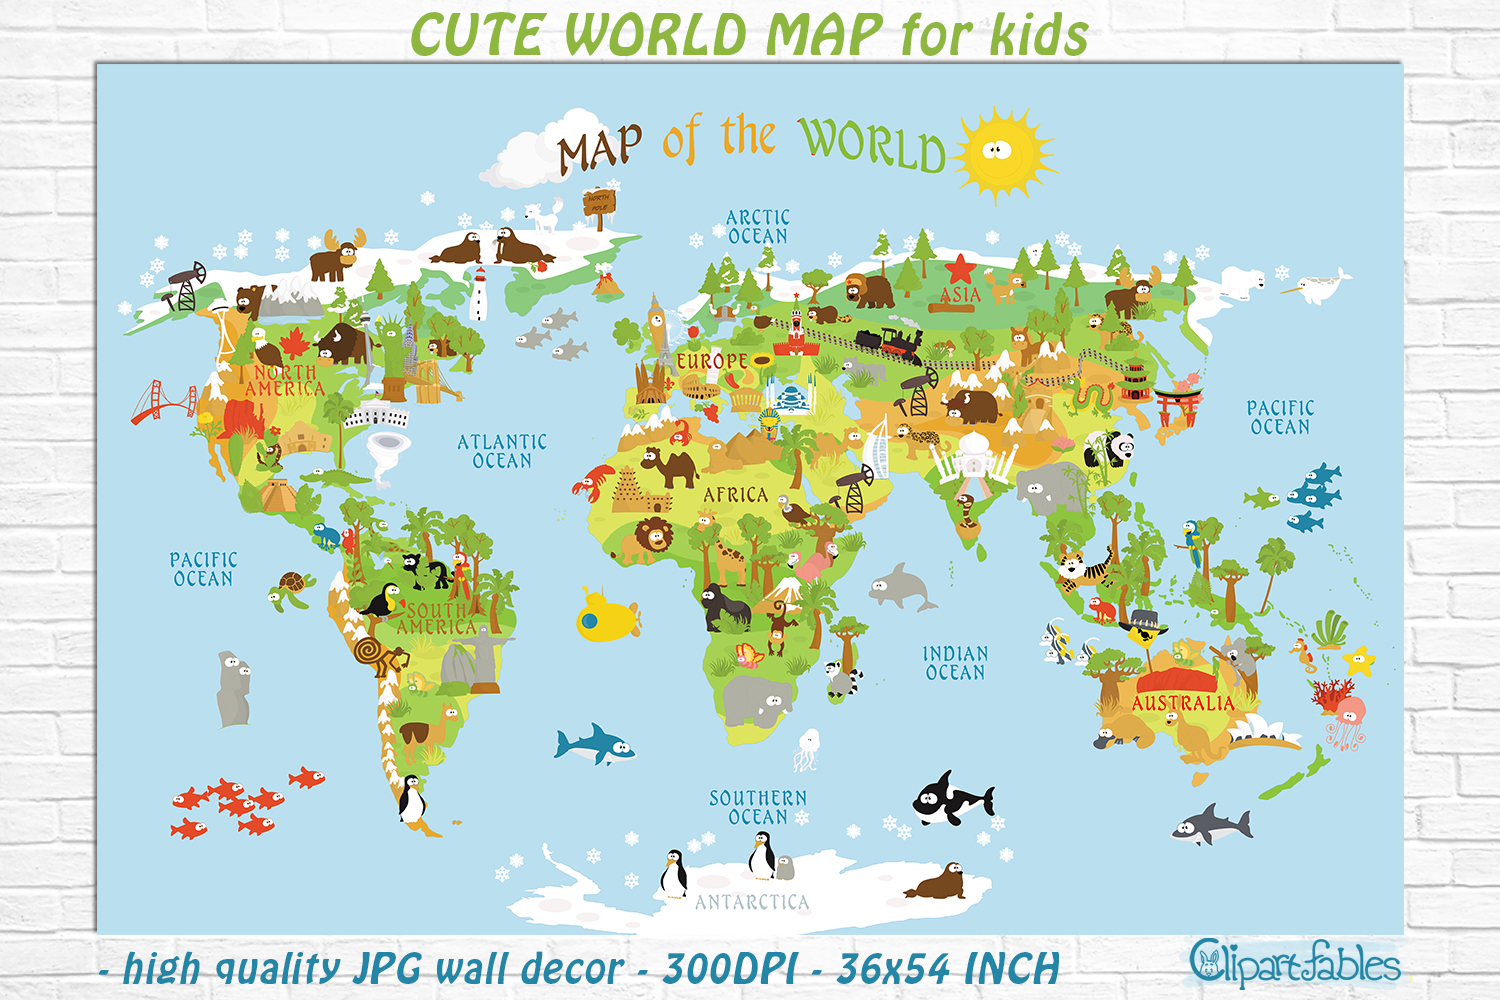 image about Printable Map for Kids named Lovely Printable Global MAP for young children - gender impartial place artwork